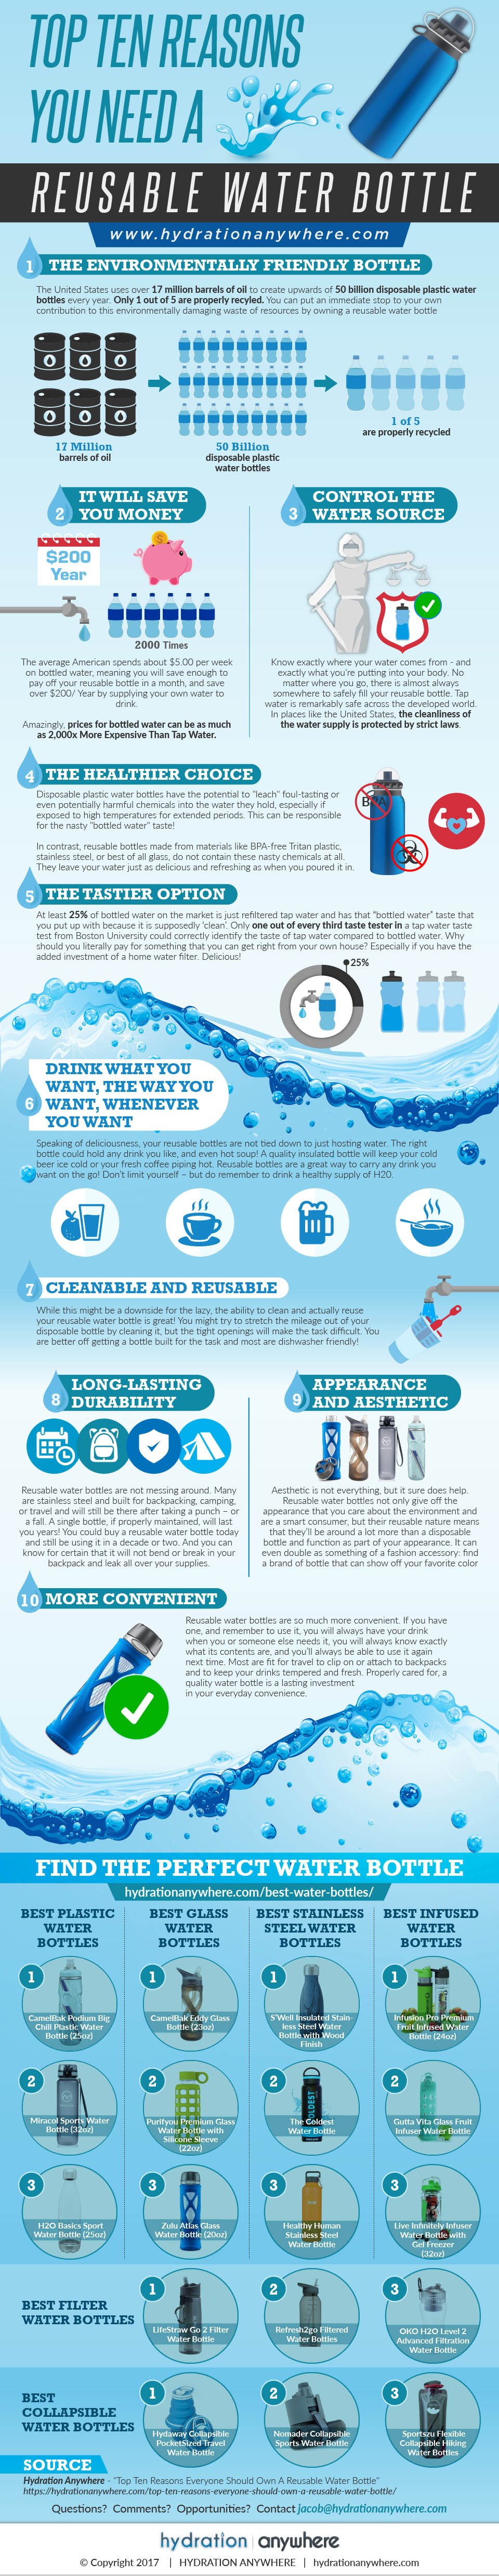 Top Ten Reasons You Need A Reusable Water Bottle